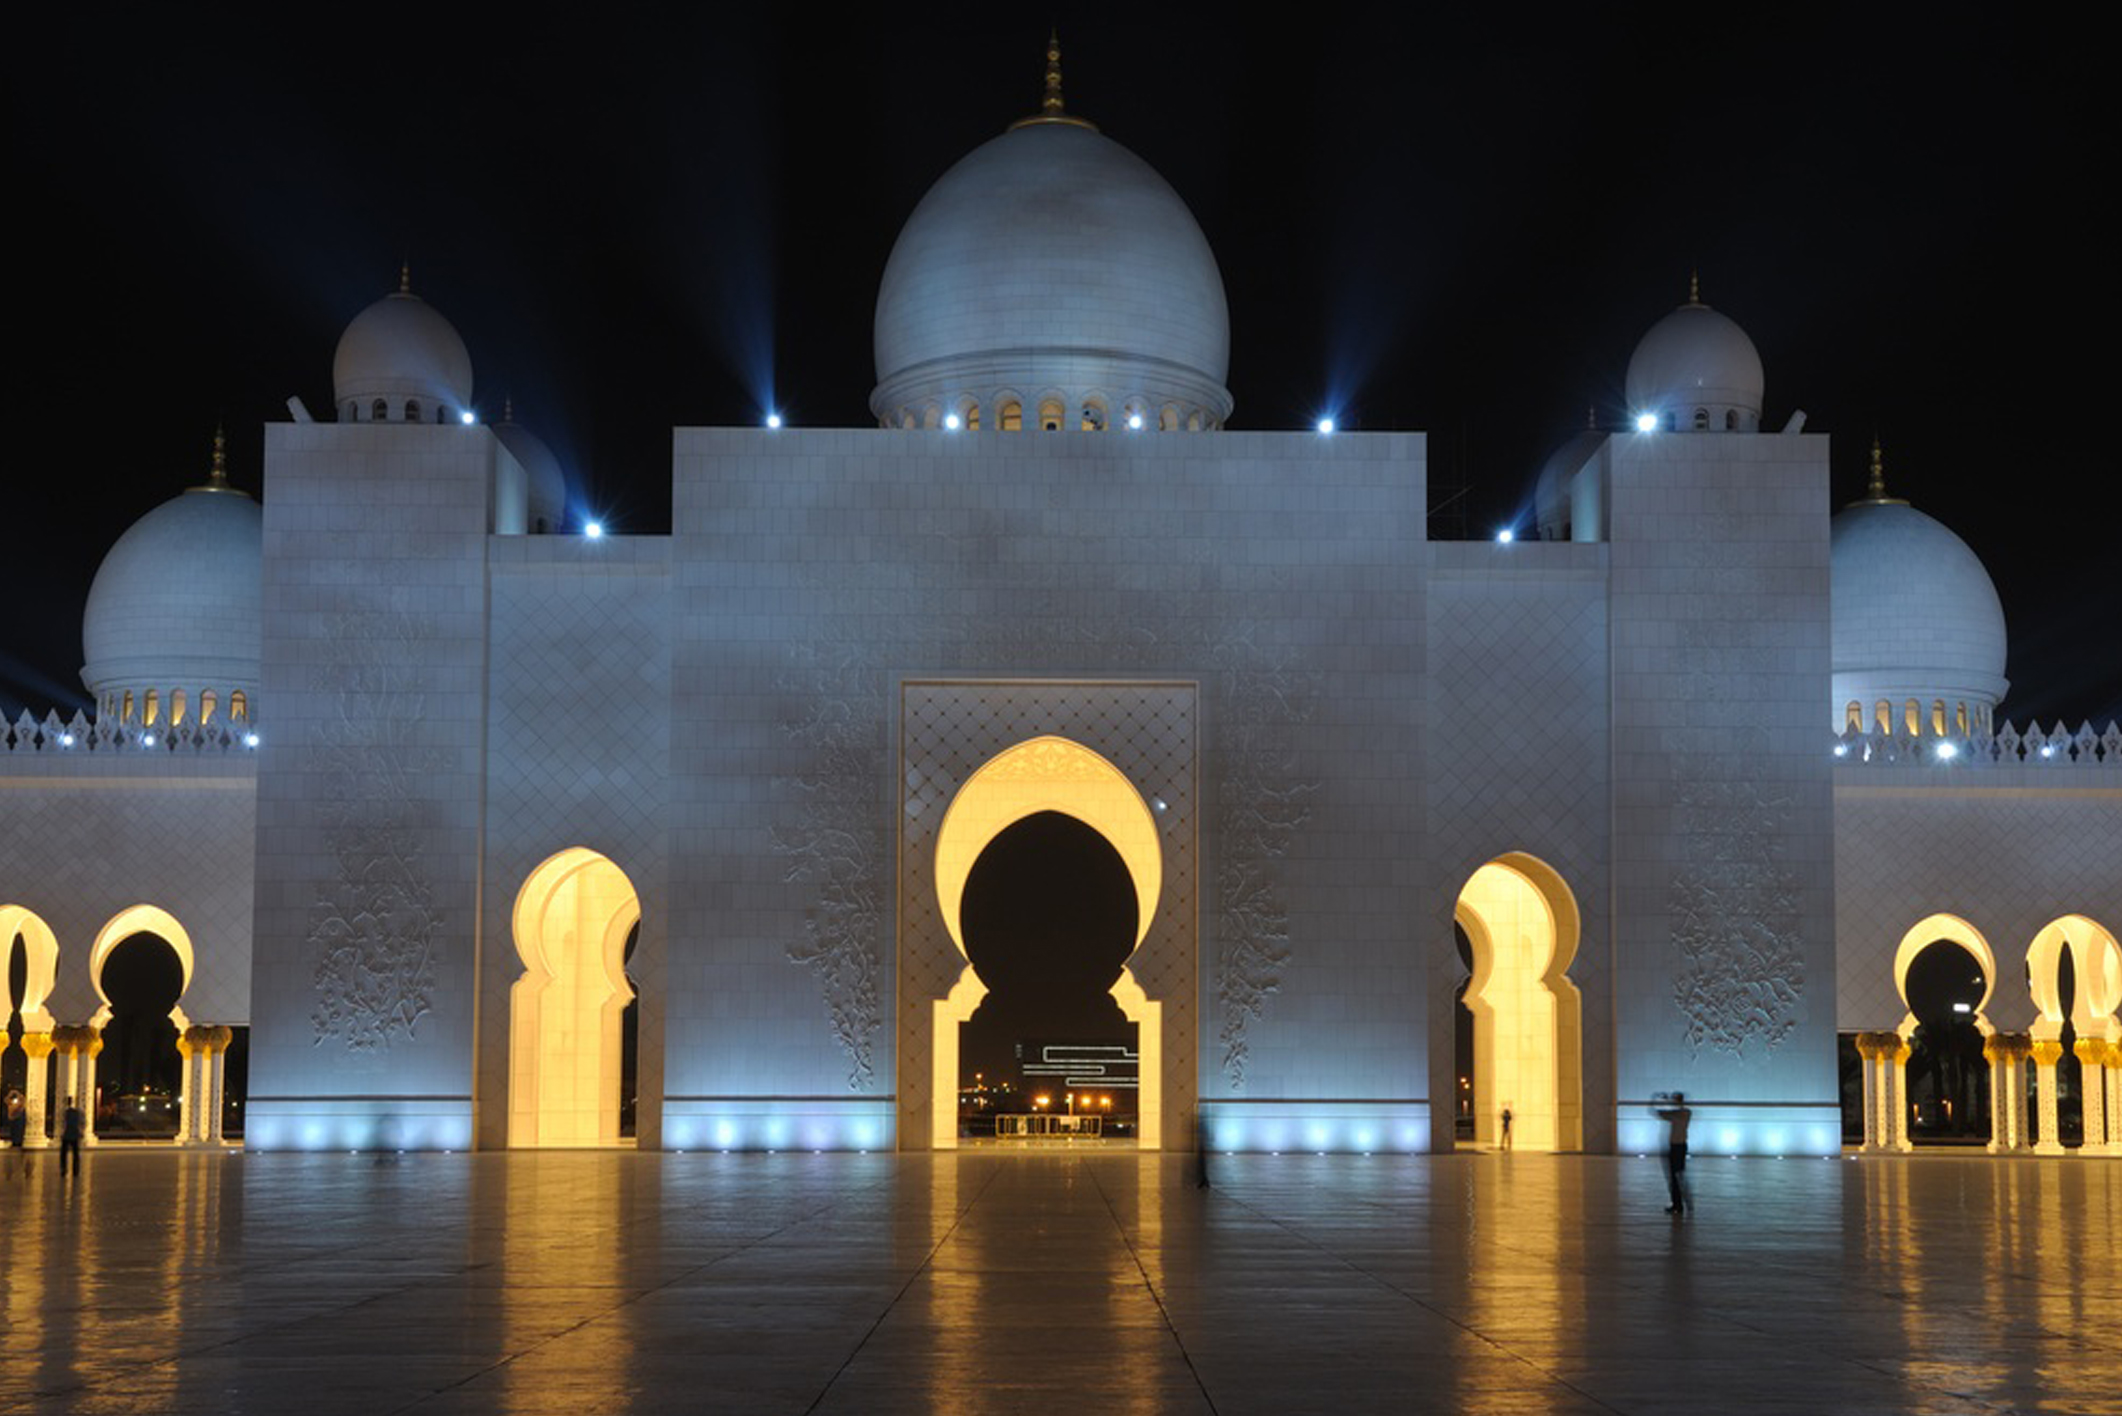 brief summary of islam Islam is the mohotheistic religion started in the 7th century, exploring worldviews and meaning in the 21st century mission  brief summary july 19, 2011 about.